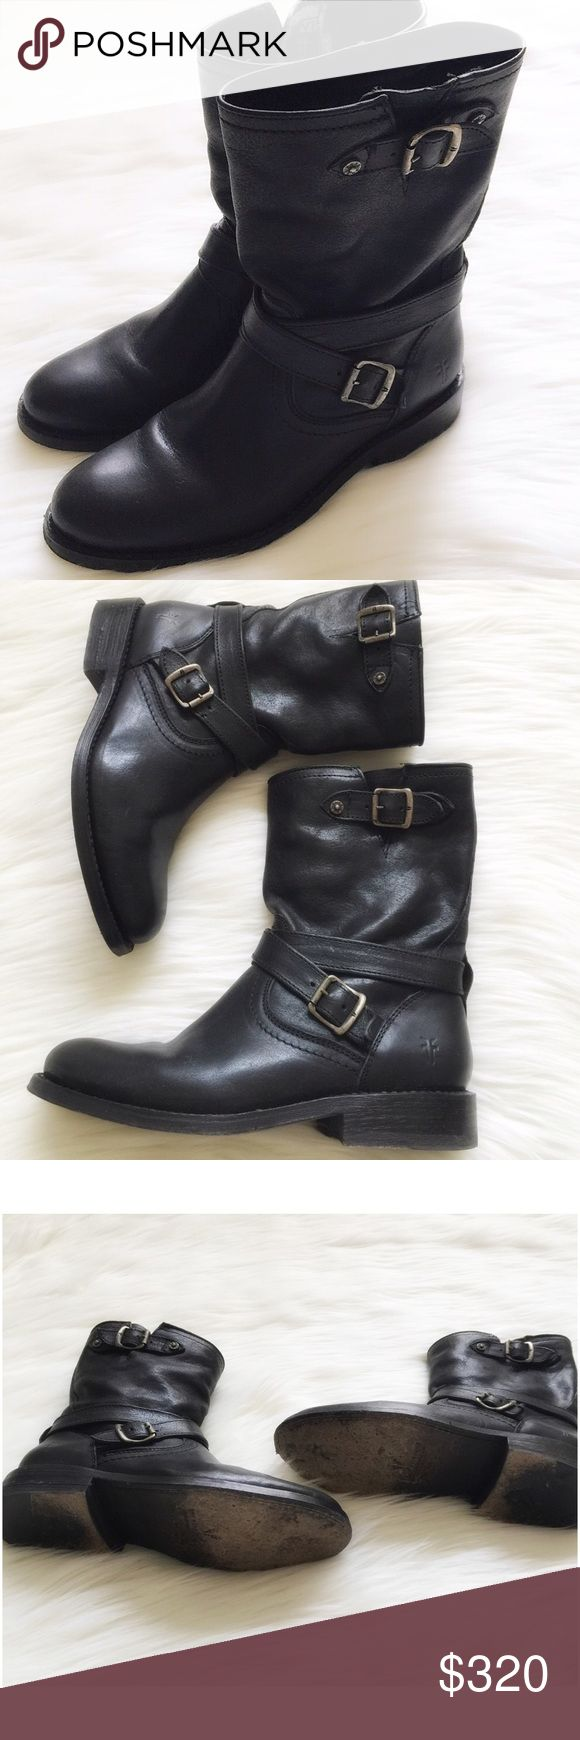 Frye Engineer boot Beautiful black supple leather upper, lining and sole are also leather. These boots are same high quality you would expect from Frye! 1 inch heel, approximately 8 inch shaft (measured from back of boot, heel to top of shaft). Pull on style. Almond shaped toe gives a more feminine touch to these moto-style boots. Worn once for a few hours, still in excellent condition, no scuffs/scratches/damages to the leather. Purchased from Frye at full price. Reasonable offers…